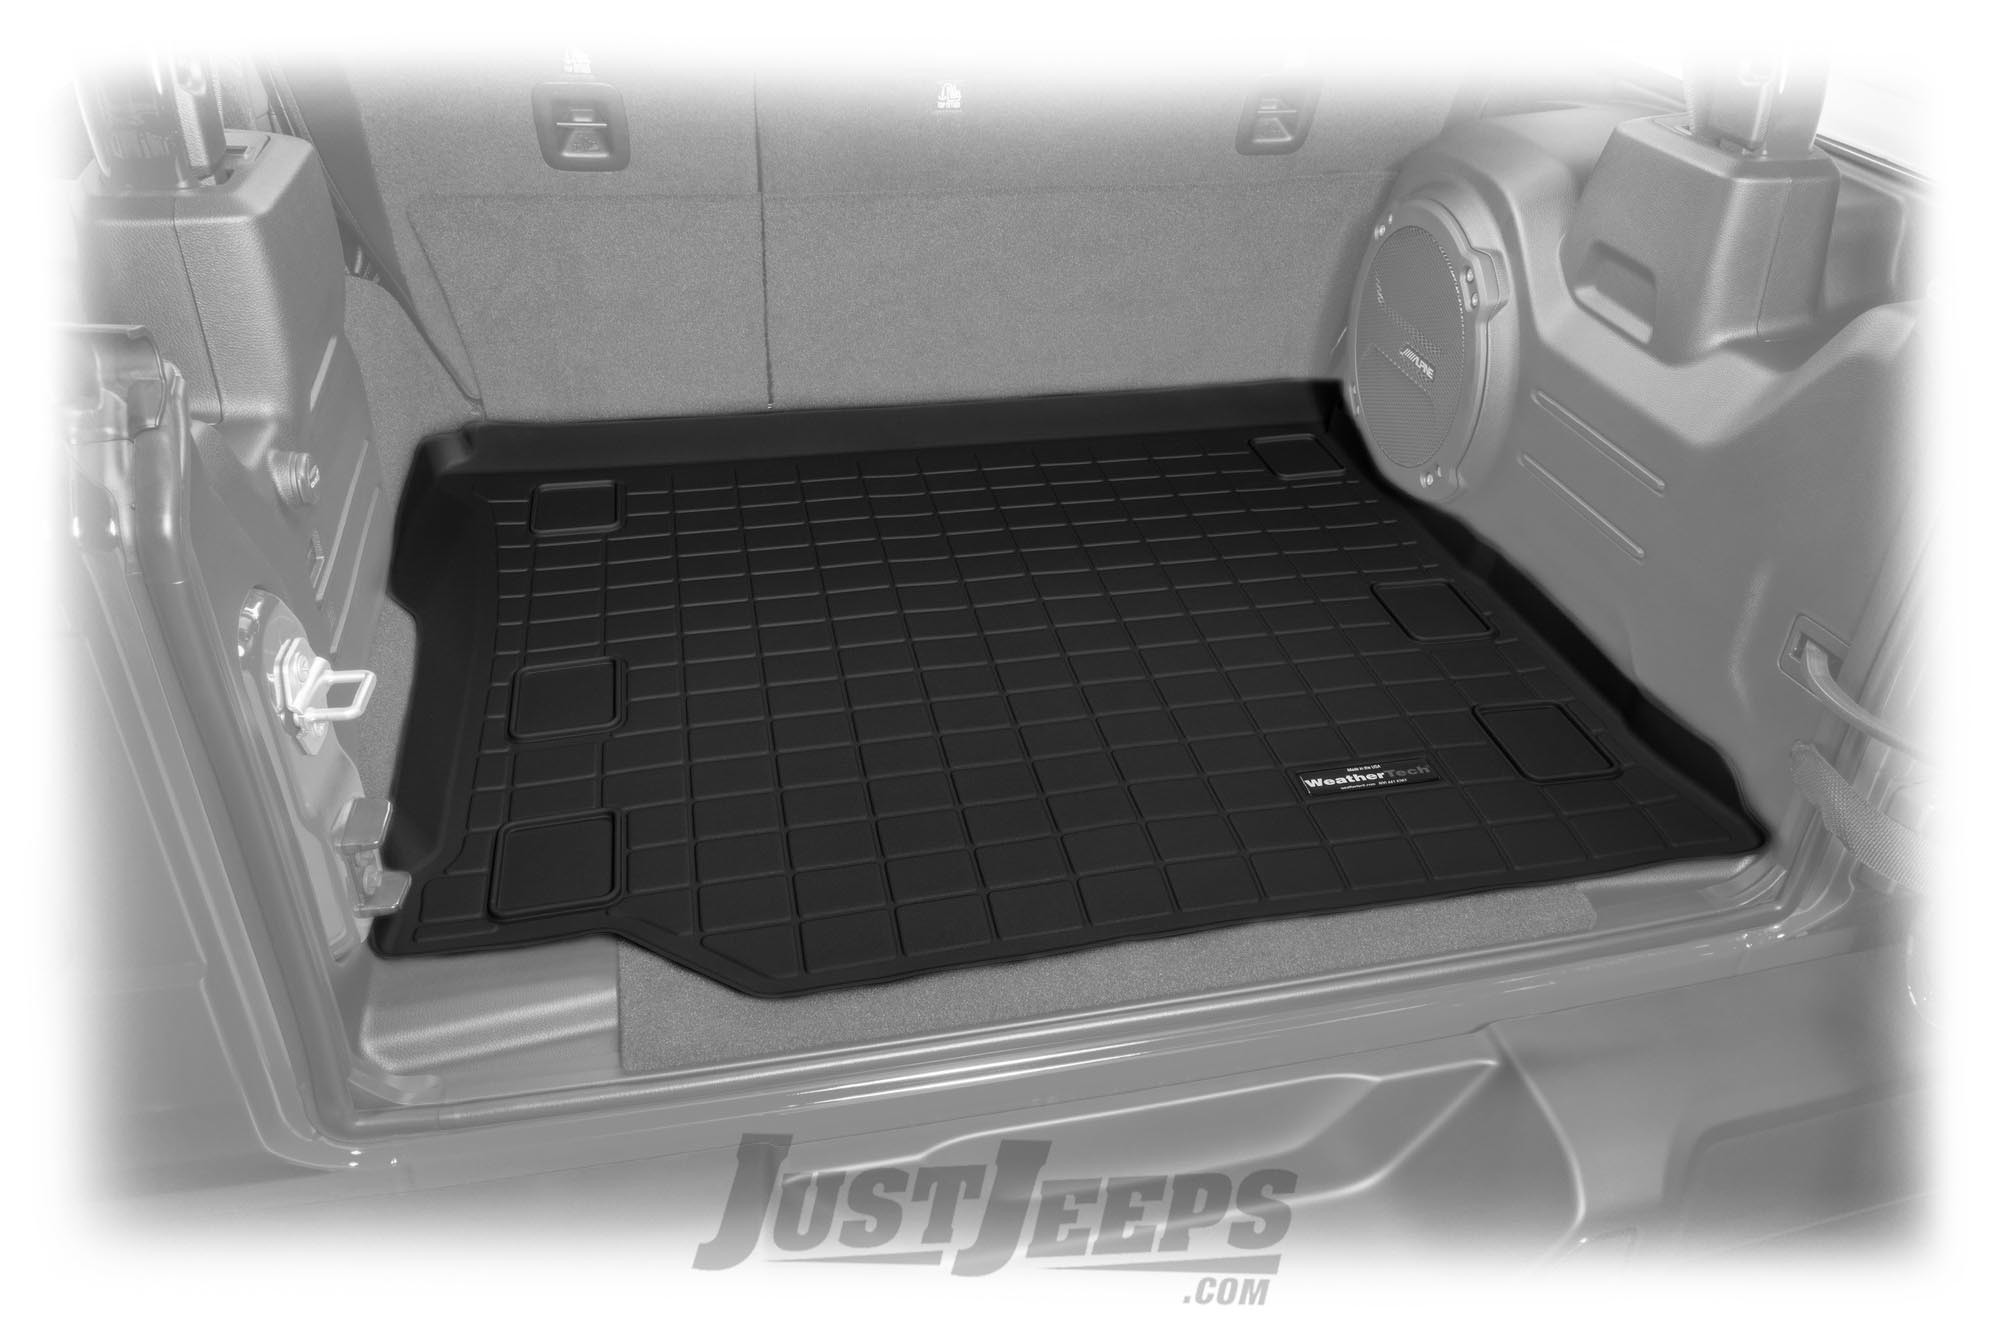 Just Jeeps Weathertech Rear Cargo Liner With Factory Subwoofer For 2018 Jeep Wrangler Jl Unlimited 4 Door Models 401107 Floor Mats Cargo Area Liner Shop By Part Jeep Parts Store In Toronto Canada